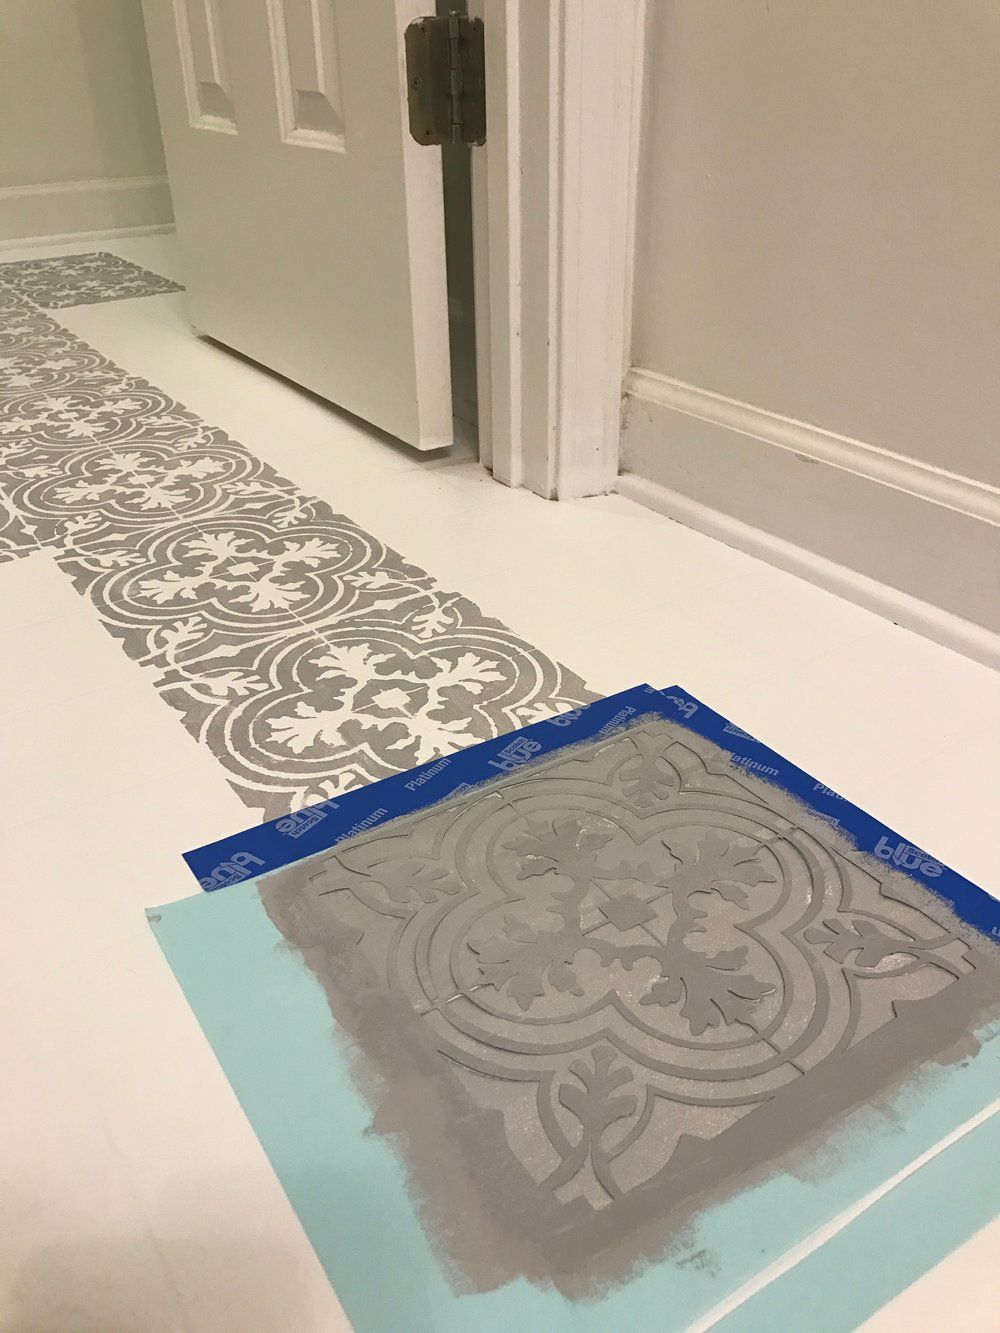 How to paint your linoleum or tile floors to look like patterned how to paint your linoleum or tile floors to look like patterned cement tiles full dailygadgetfo Choice Image